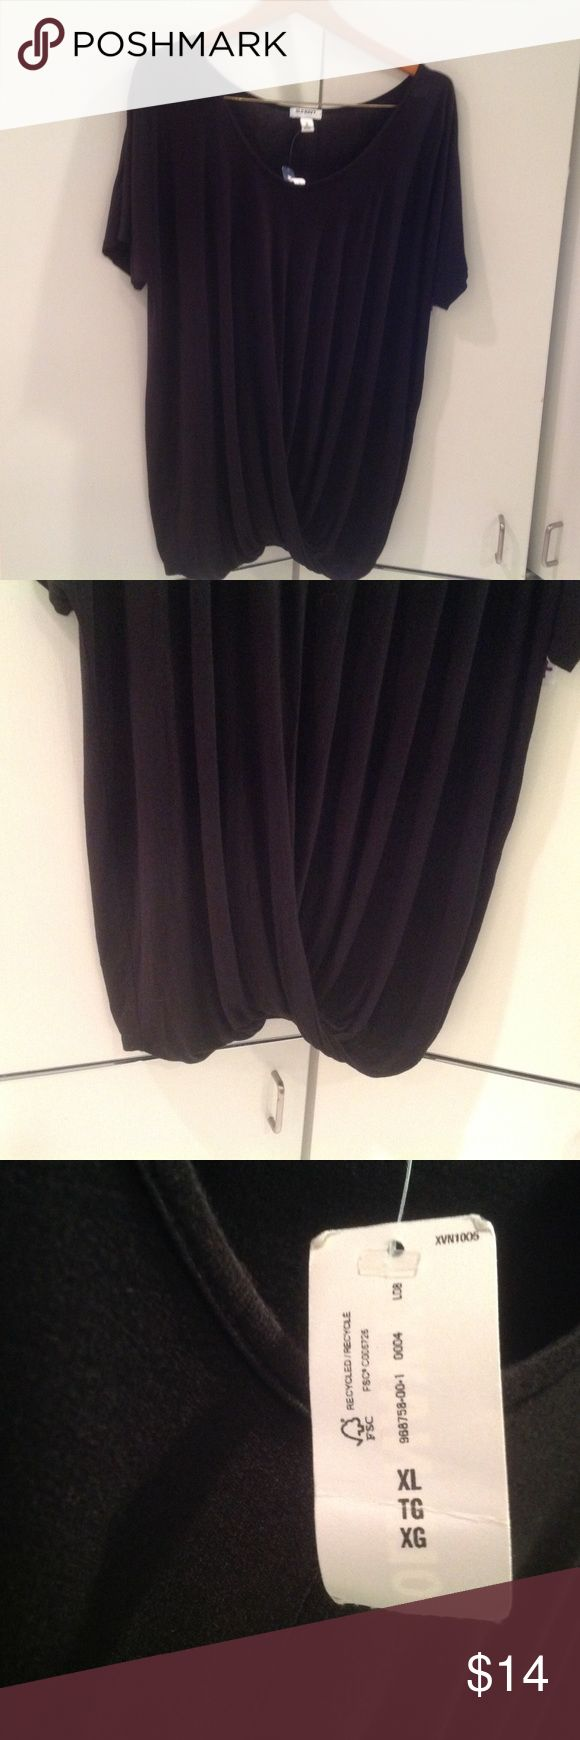 WEEKEND SALE!  Black twisted front shirt NEW Old navy short sleeve twisted front drape.  Very comfortable and flattering. Size XL Old Navy Tops